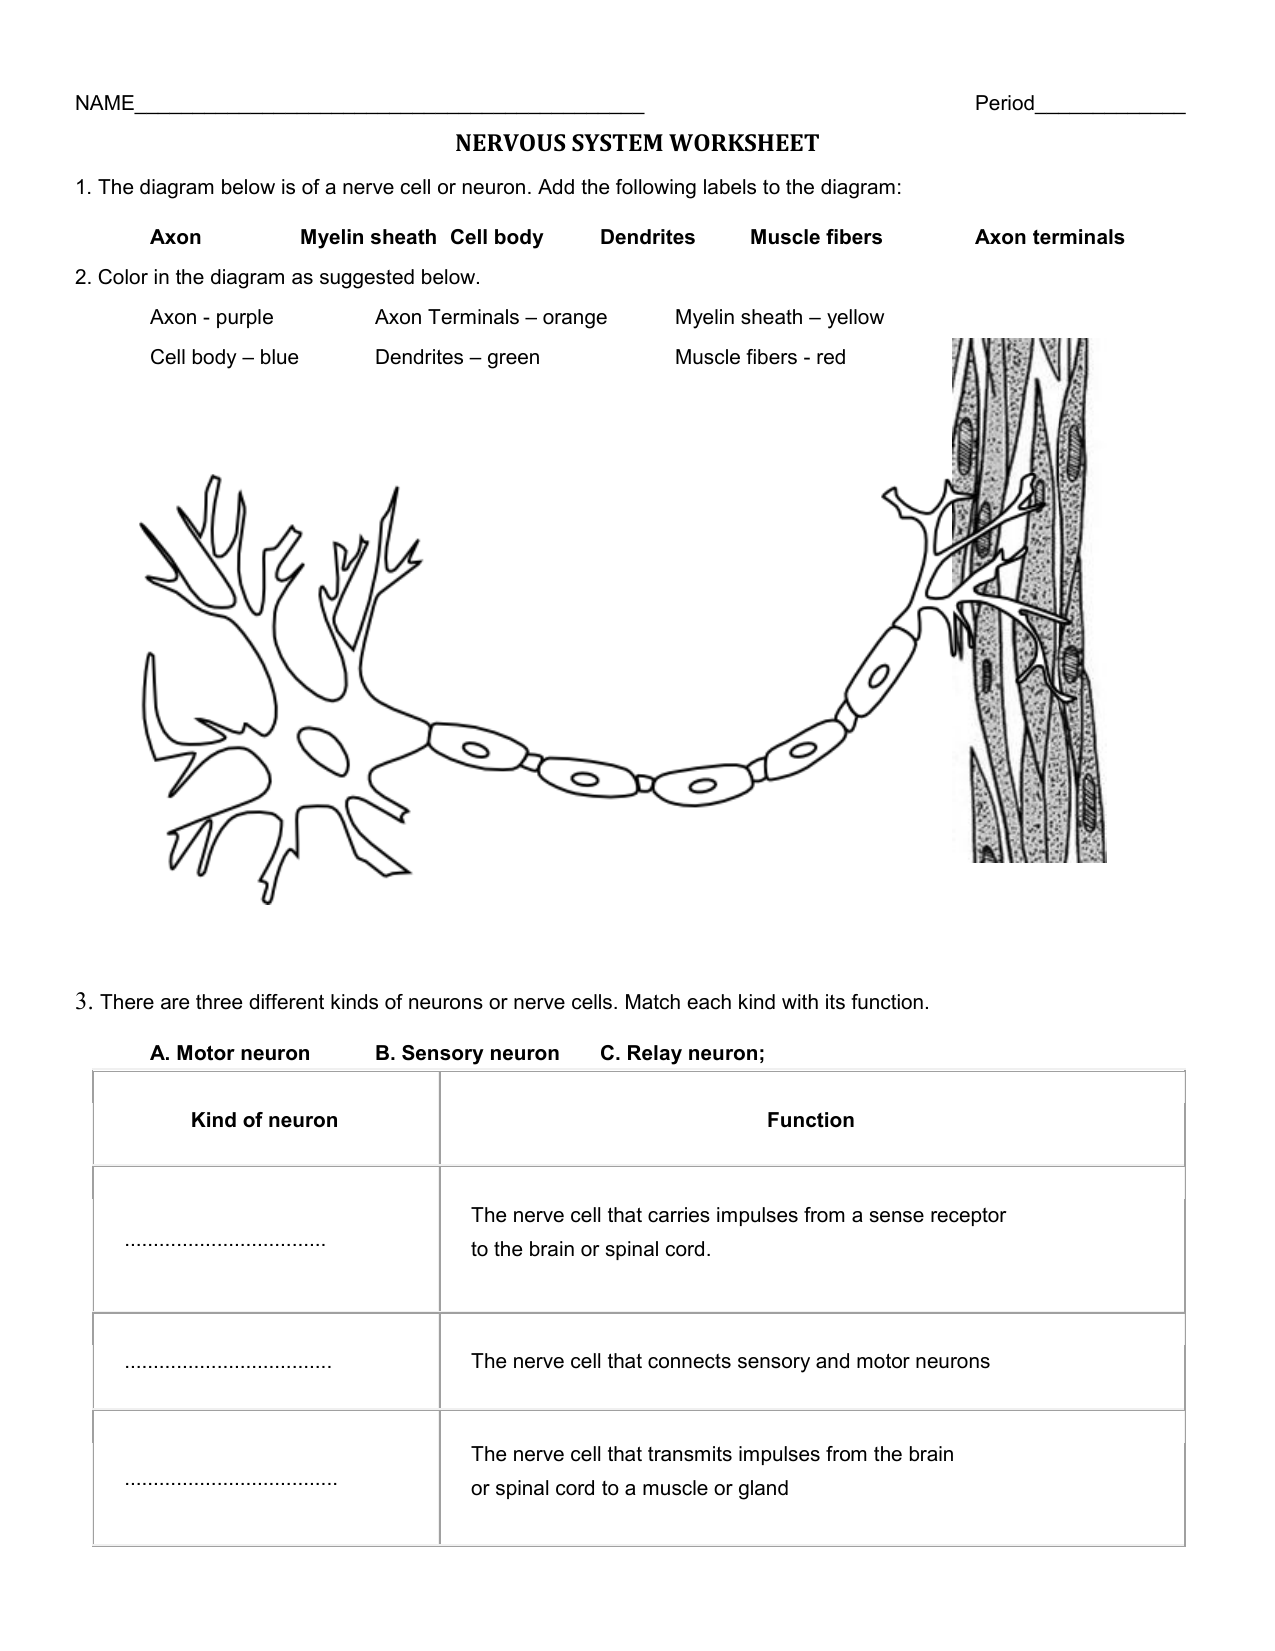 Nervous-System-Worksheet